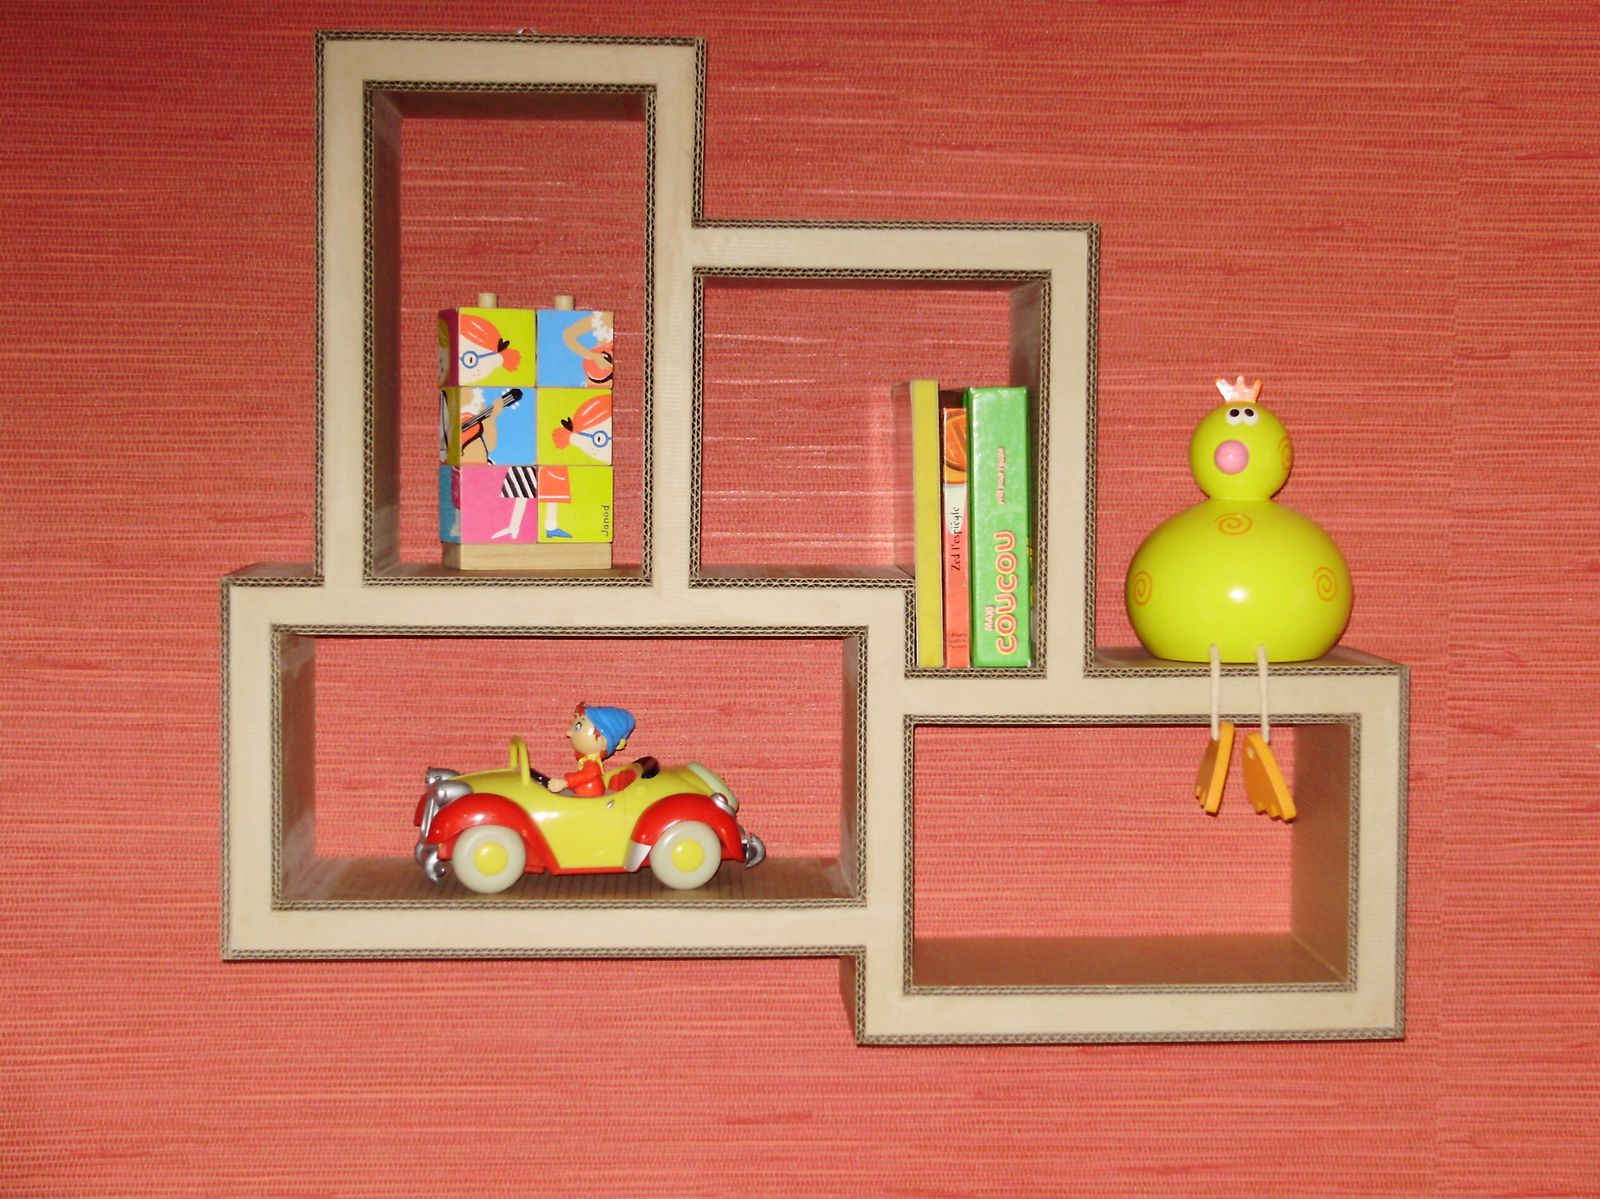 Cuisine des enfants cake ideas and designs - Etagere murale pour cd ...